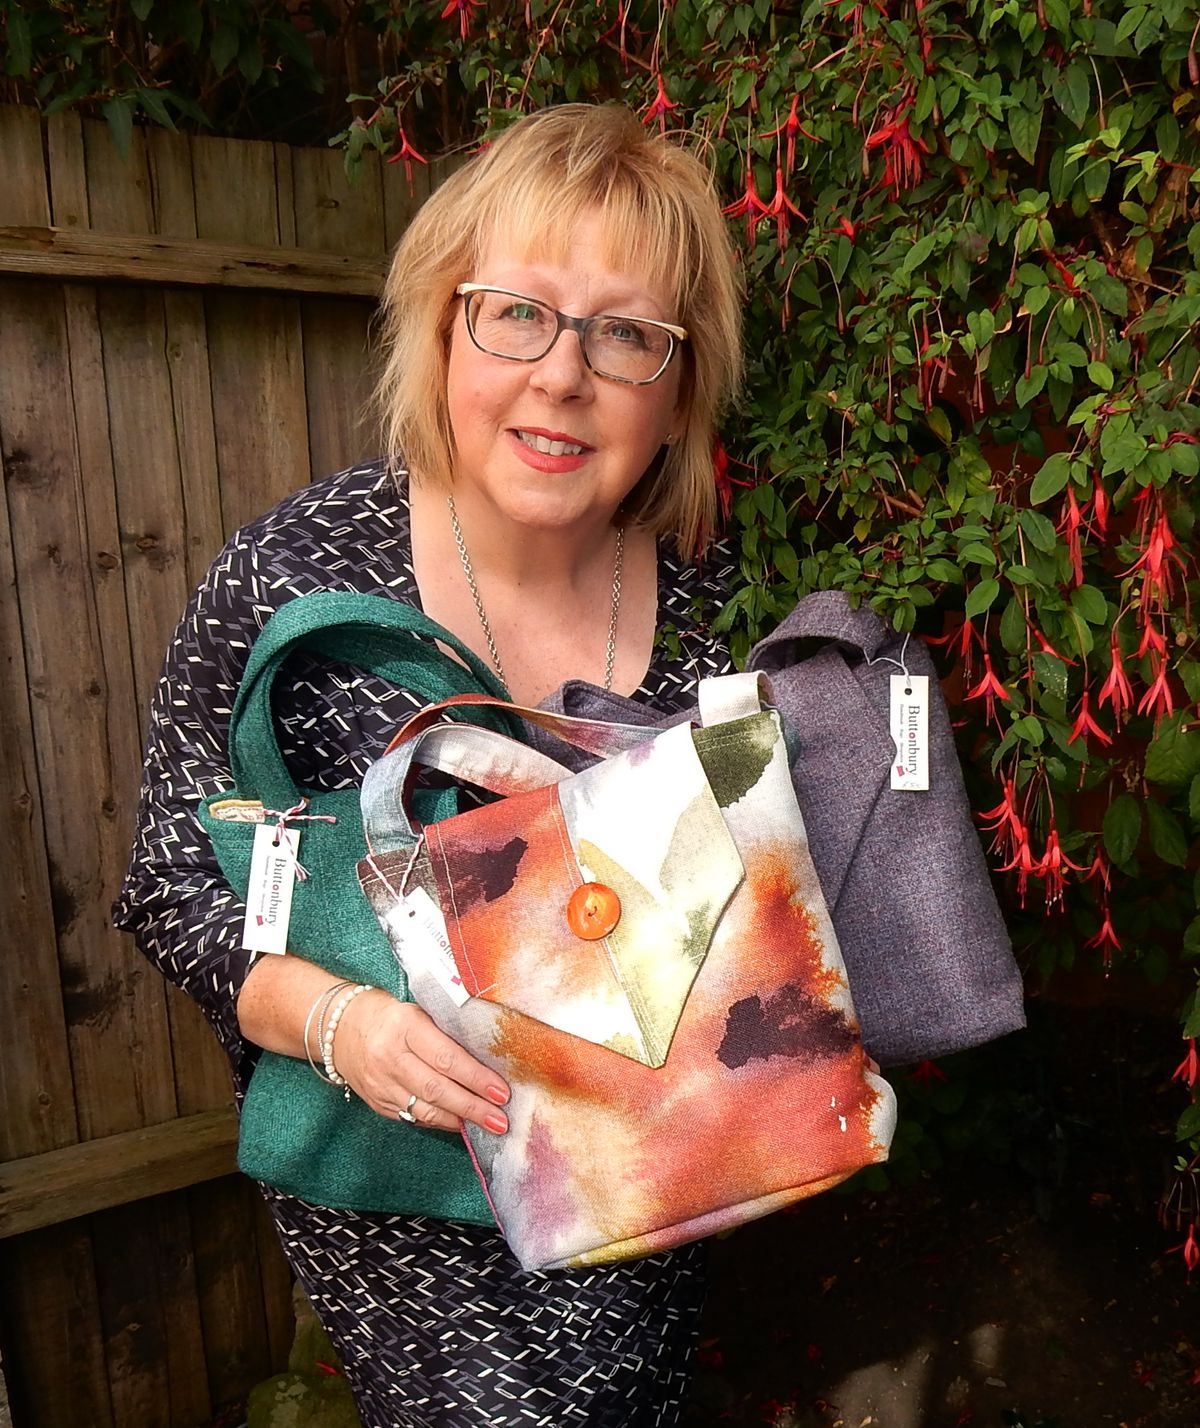 Sandra with some of her bags